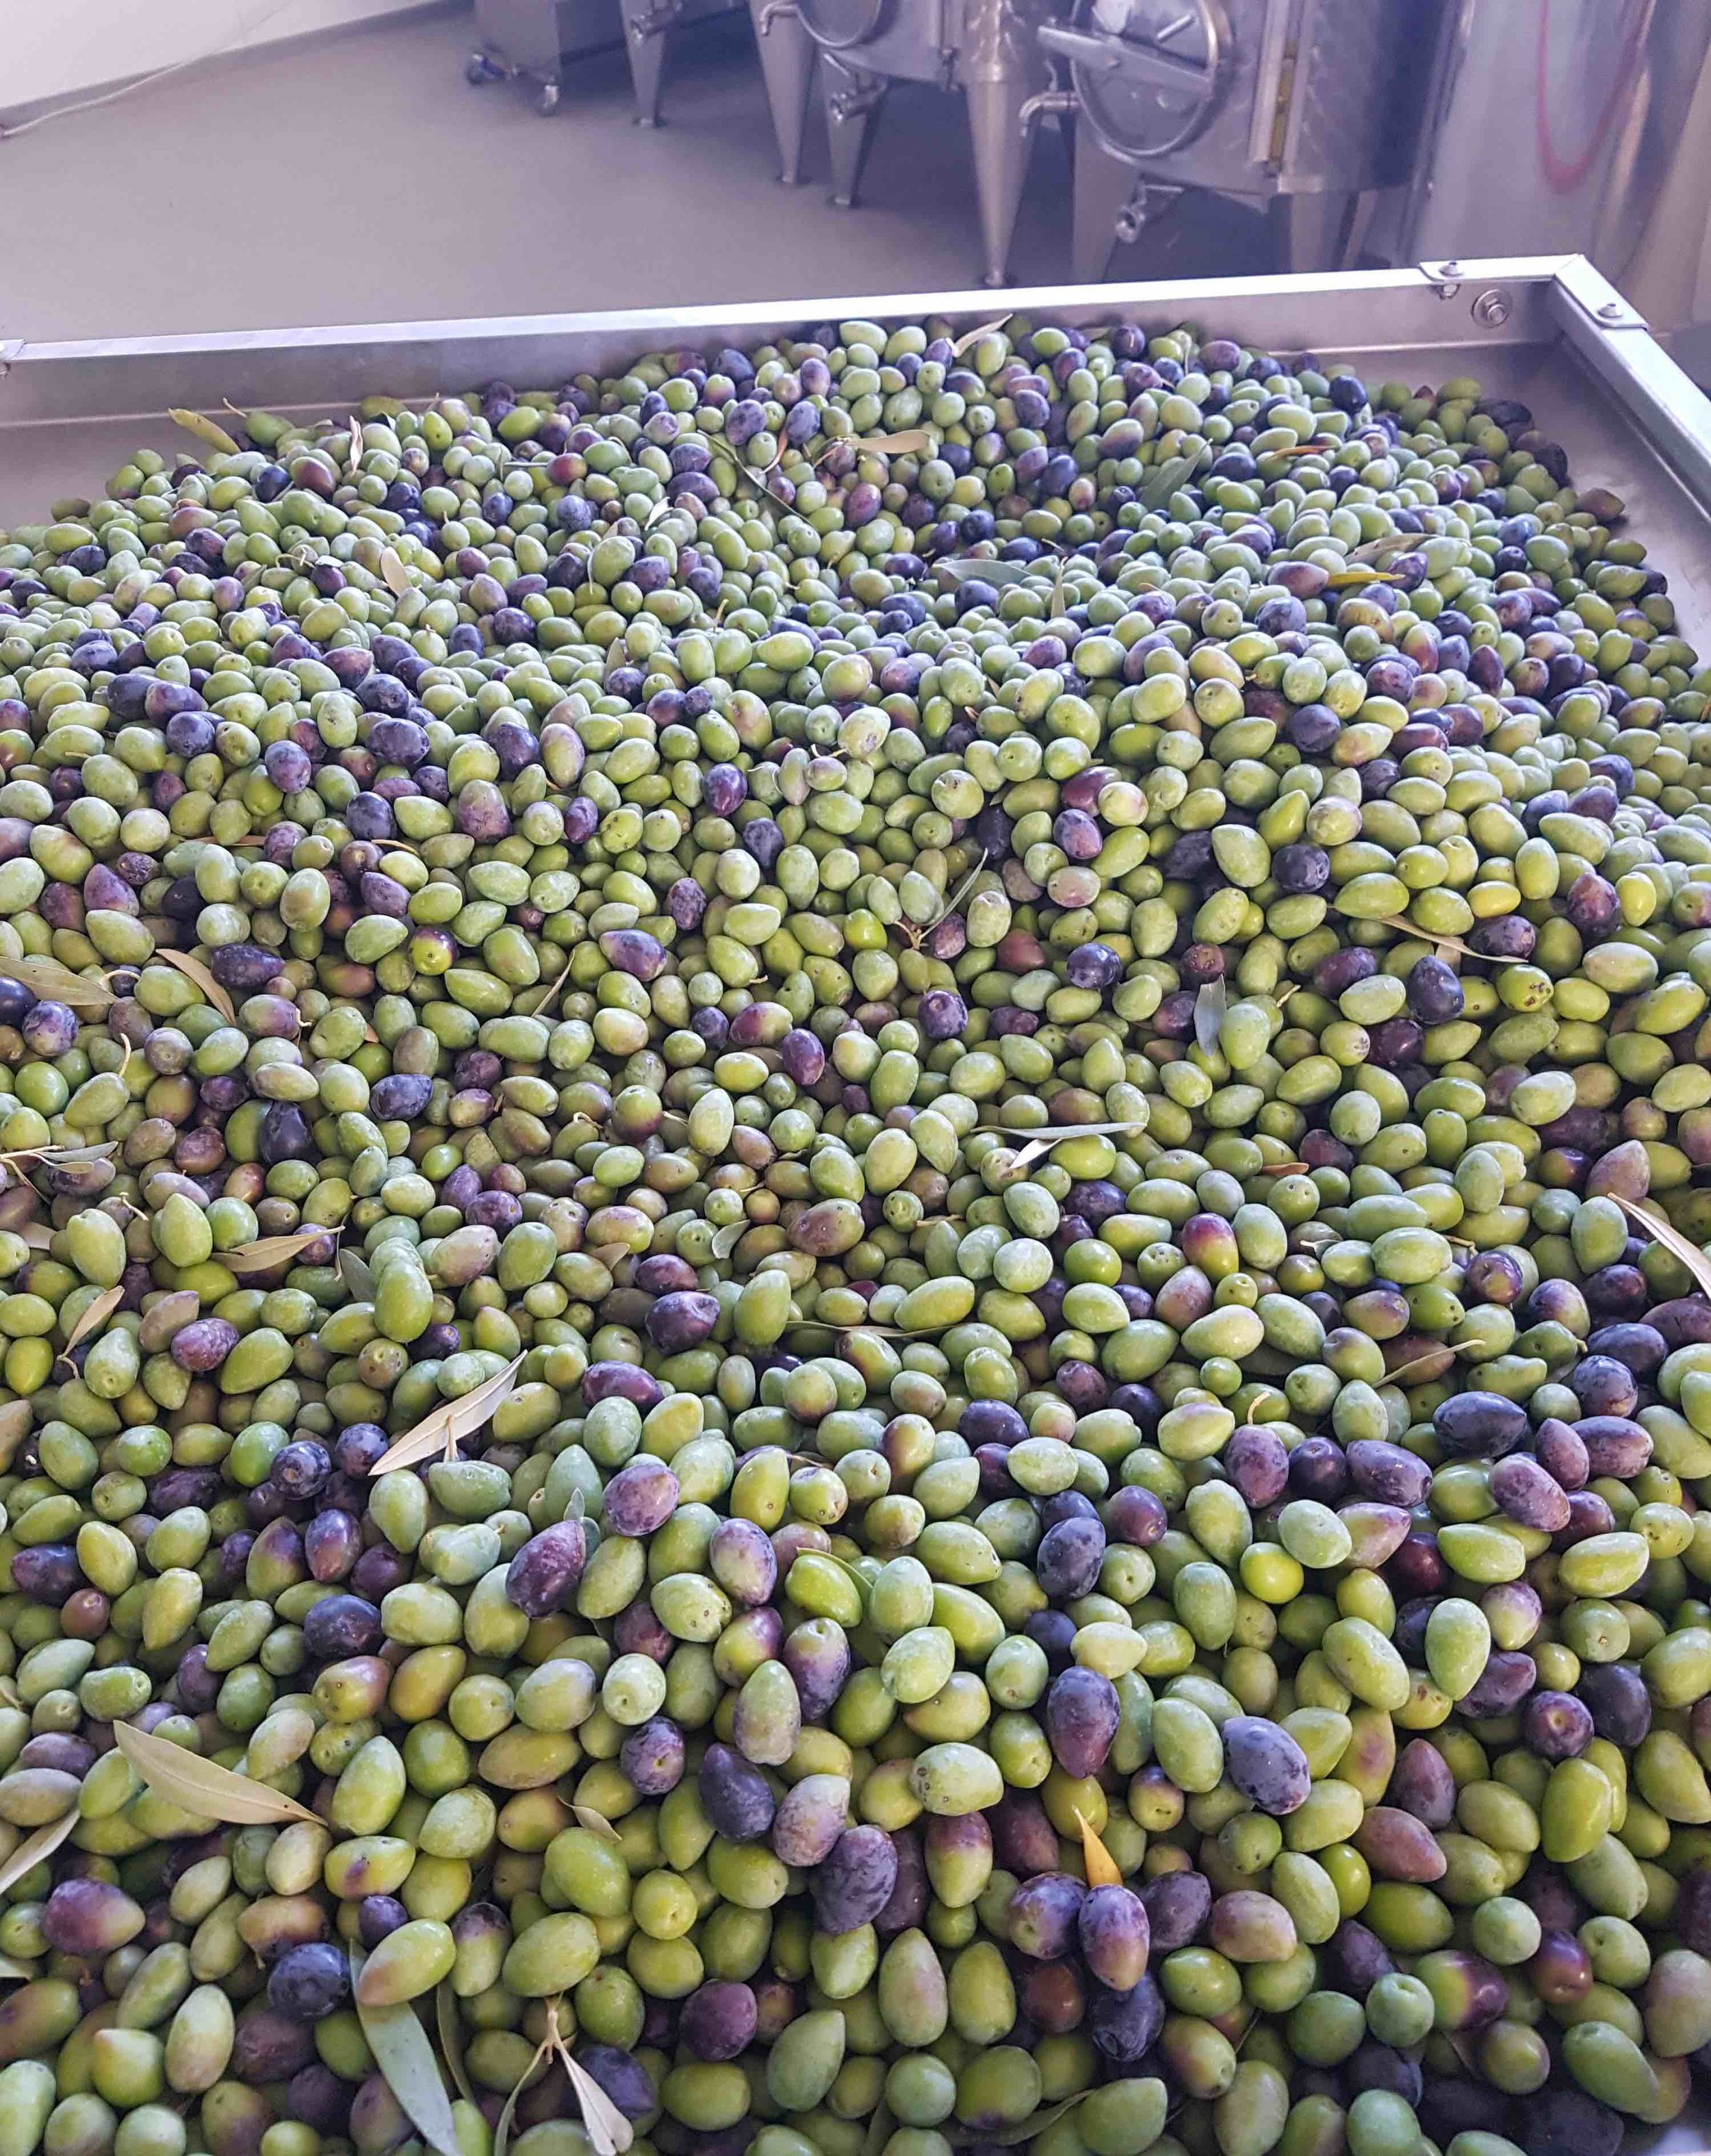 Unripened olives of the 'kalamon' variety ready to be milled at Atsas Farm. Contemporary scientific research has confirmed statements made by the Greek physician, pharmacologist, botanist Dioscorides ca. the year 60 AD, that olives must be picked while still unripened for them to have the maximum healing properties.  Photos: Nicolas Netien, 2017.